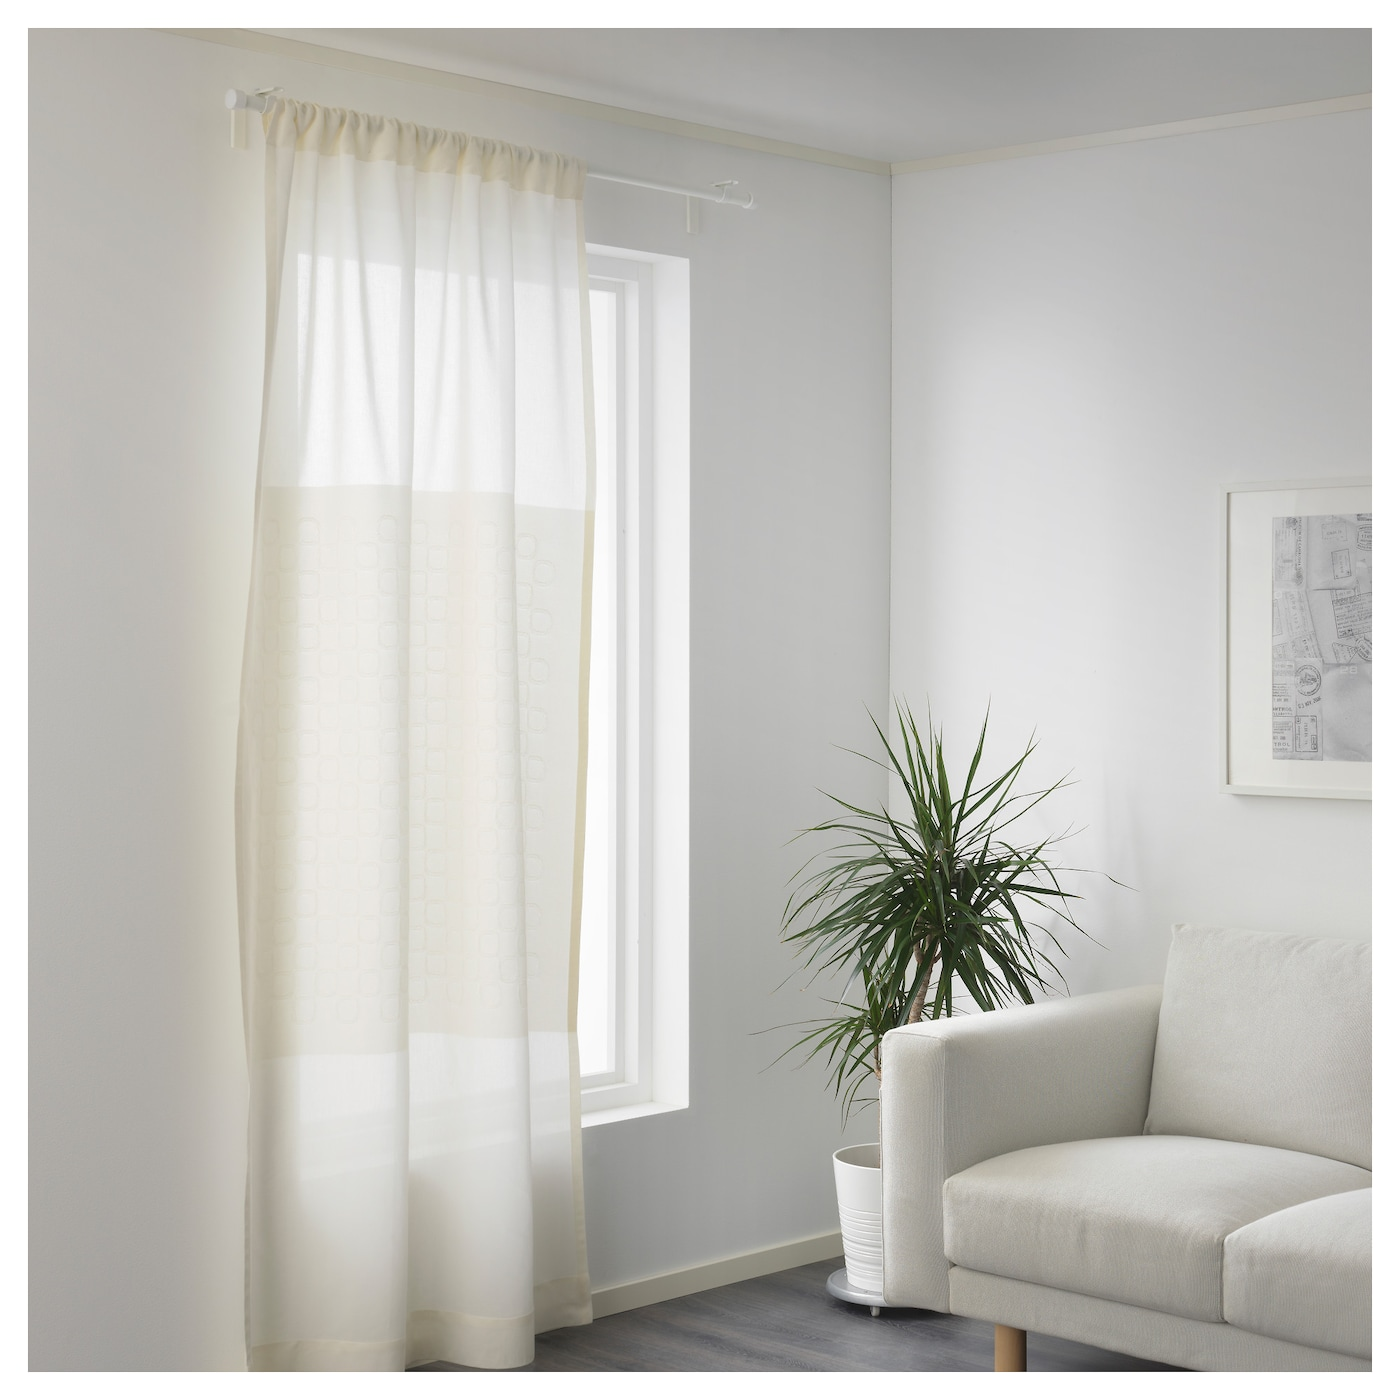 dividers home ideas curtain image charter room diy of